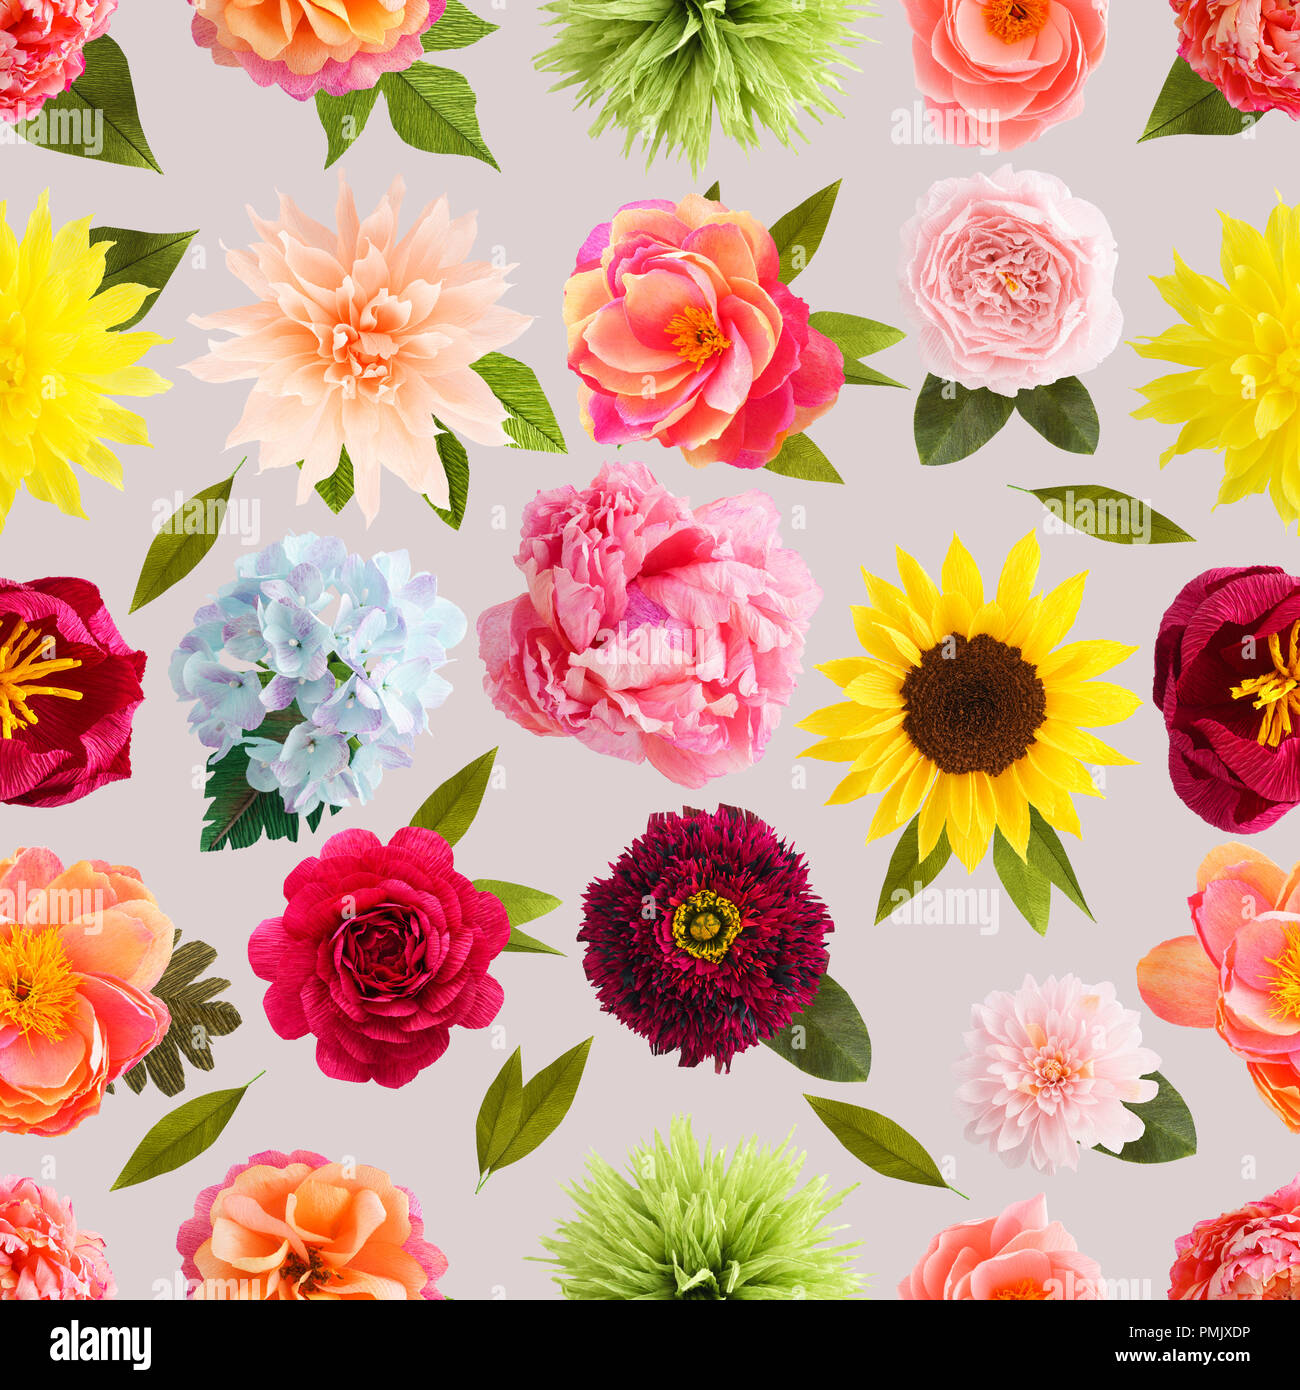 Crepe Paper Flowers Stock Photos Crepe Paper Flowers Stock Images